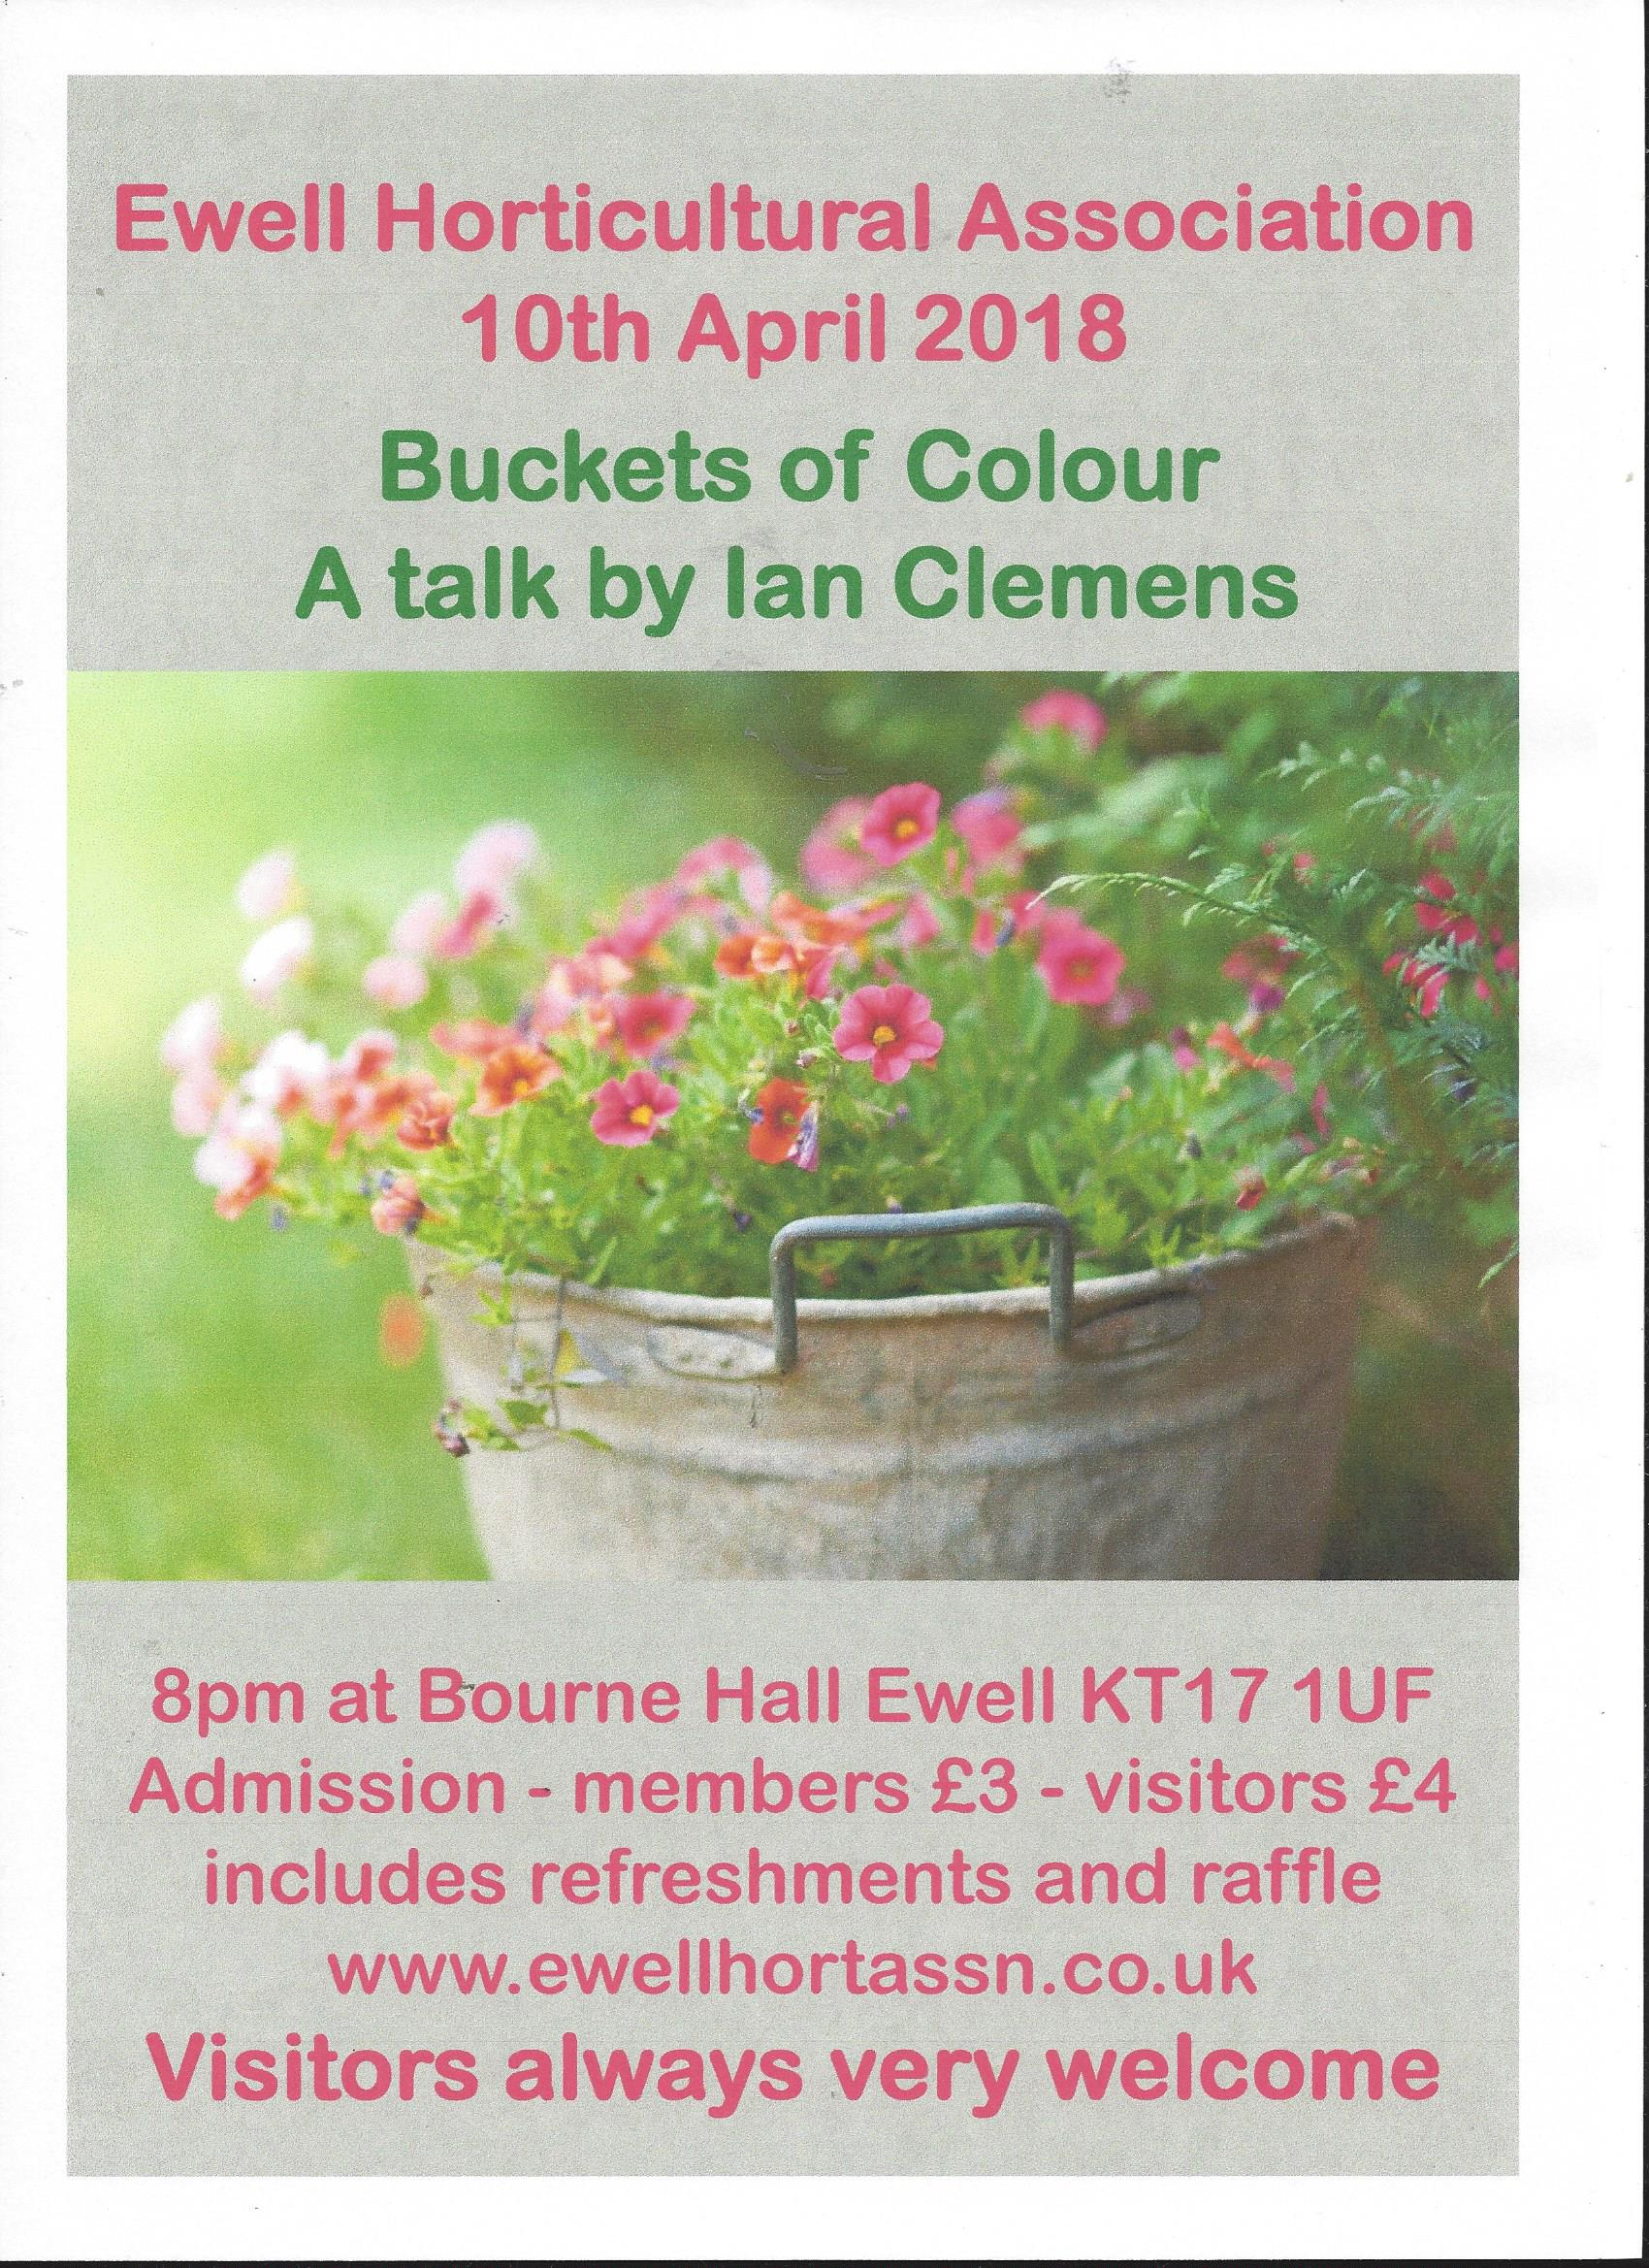 An illustrated talk: 'Buckets of Colour' by Ian Clemens